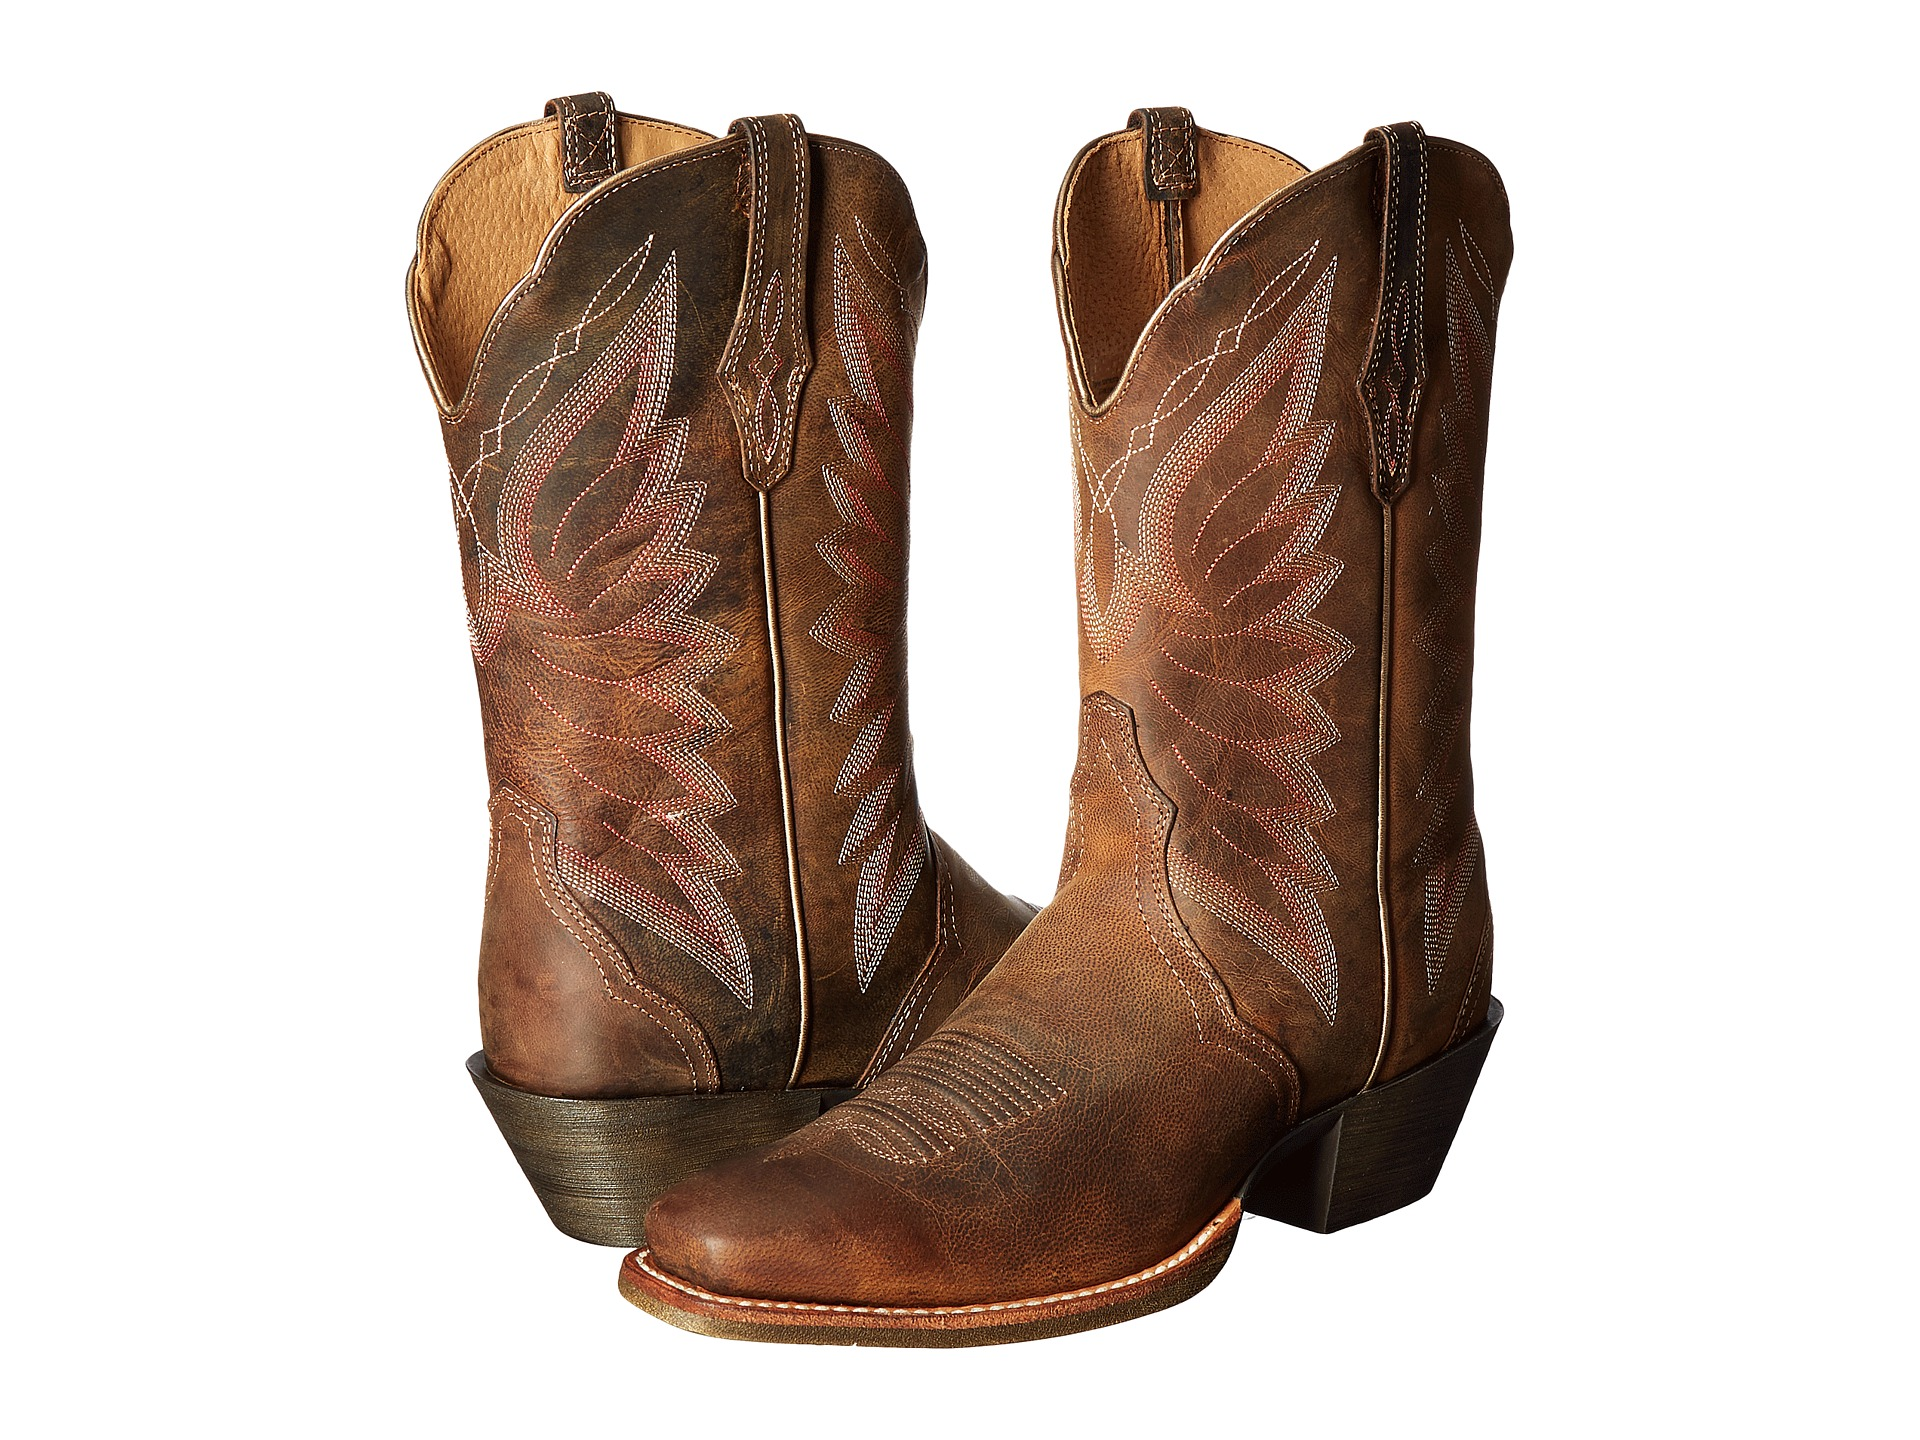 Ariat, Boots, Women | Shipped Free at Zappos